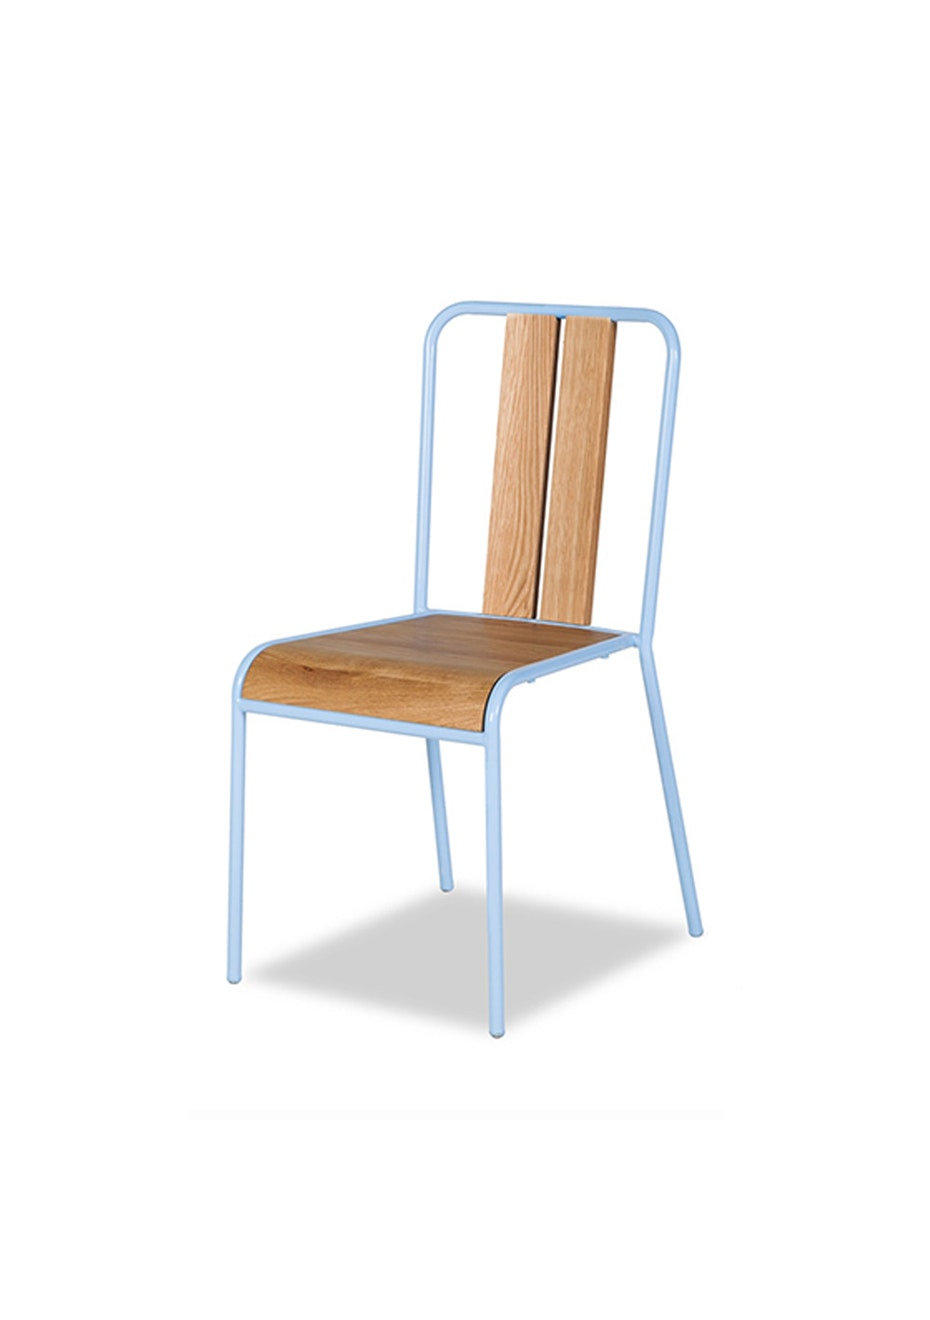 Furniture By Design - Manhattan Chair - Oak and Light Blue